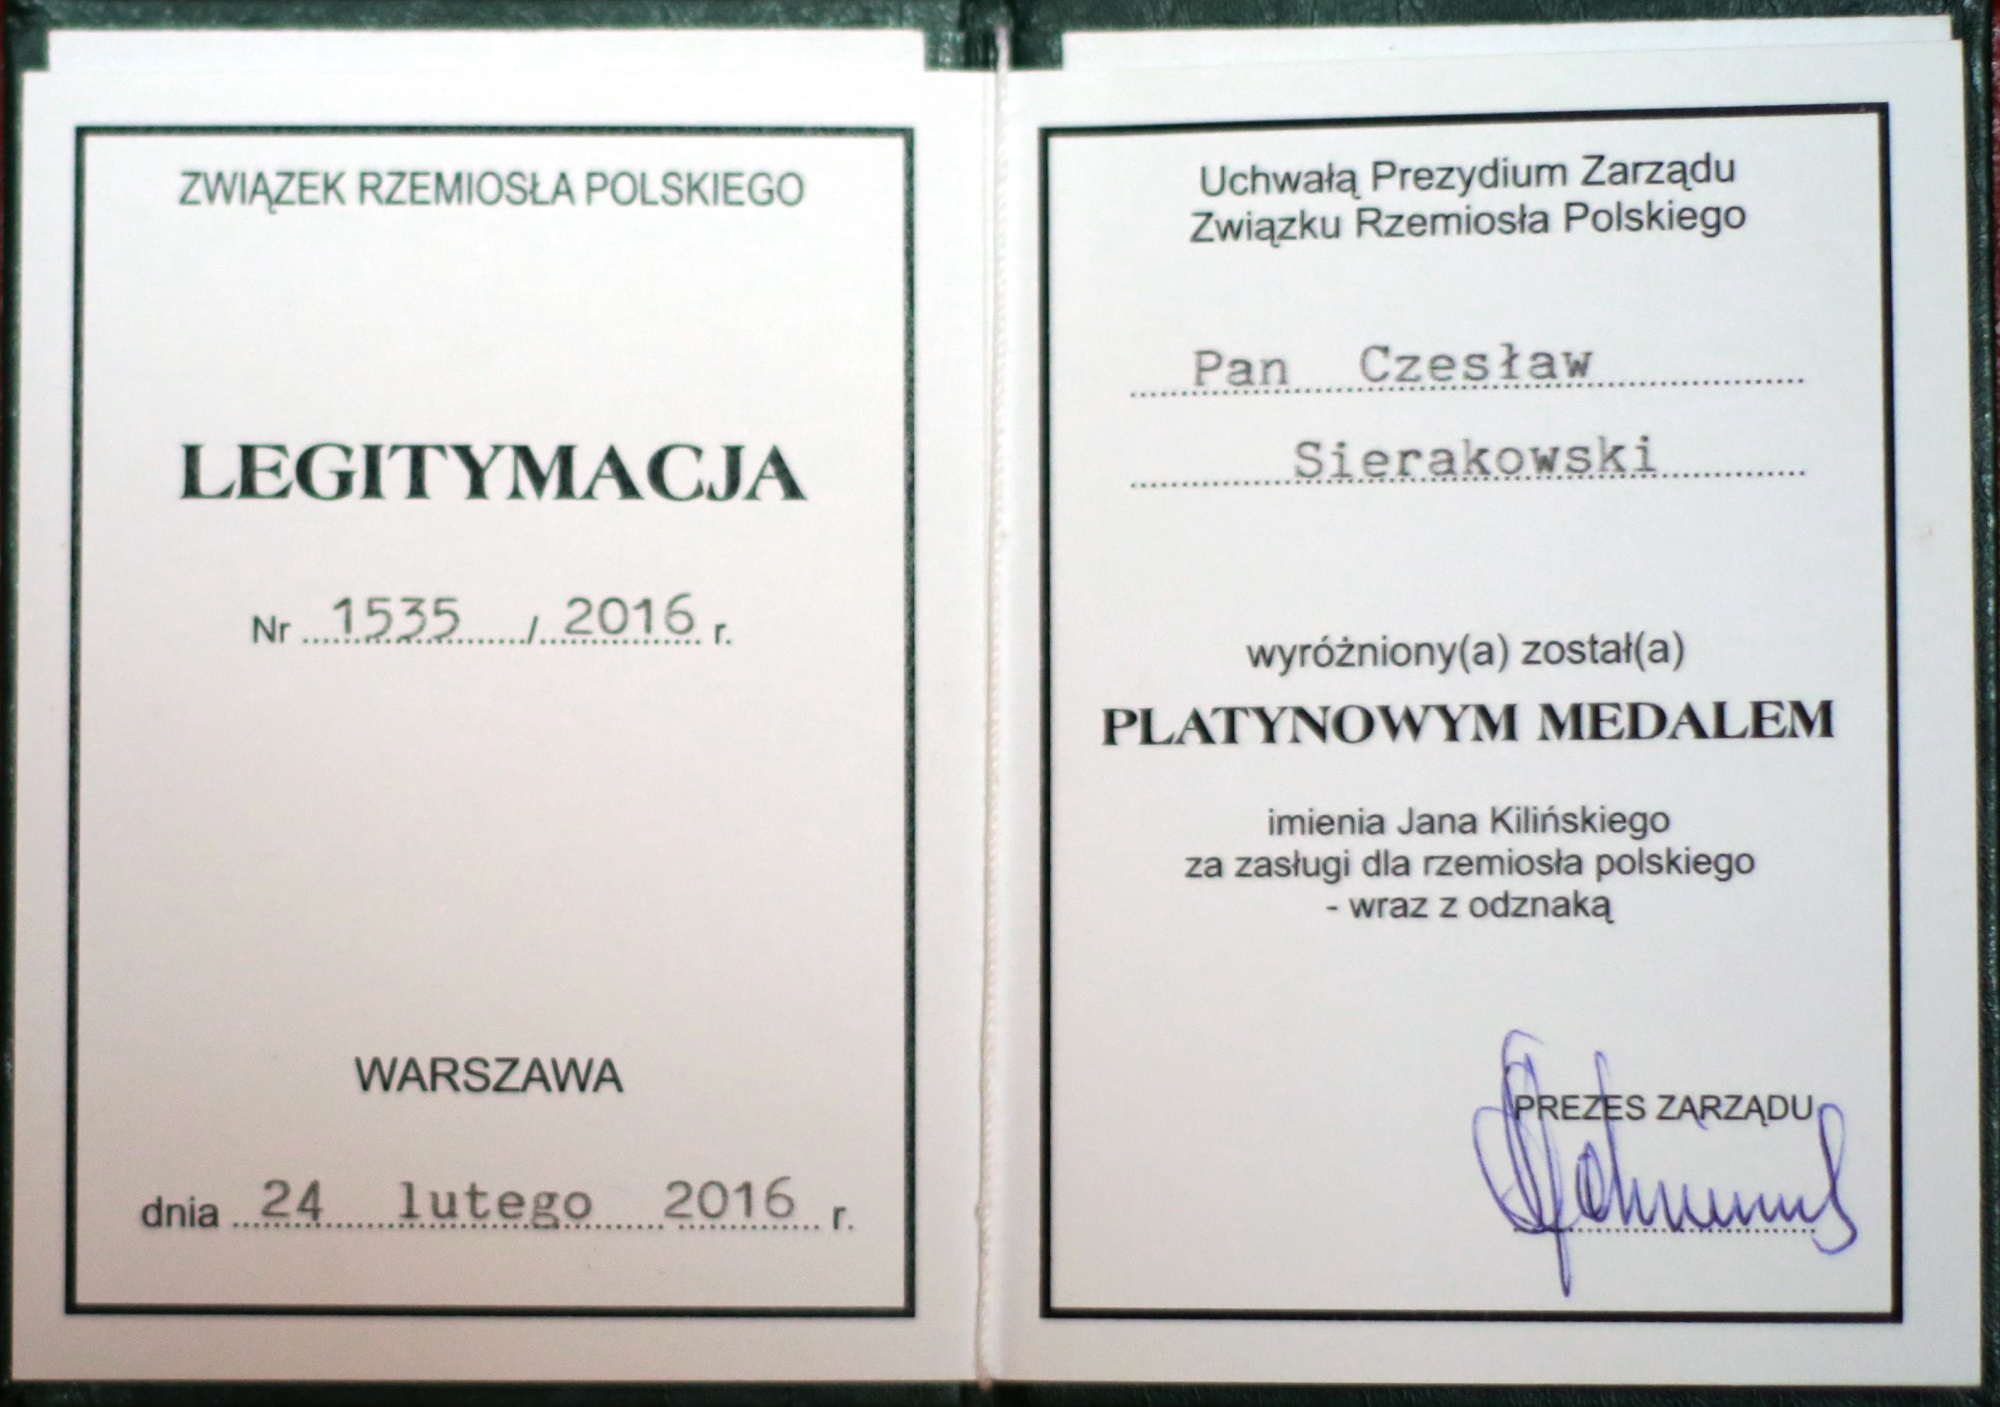 A certificate added to Jan Kiliński Platinum Medal- given by Polish Craft Association for the appreciation of the services in 2016